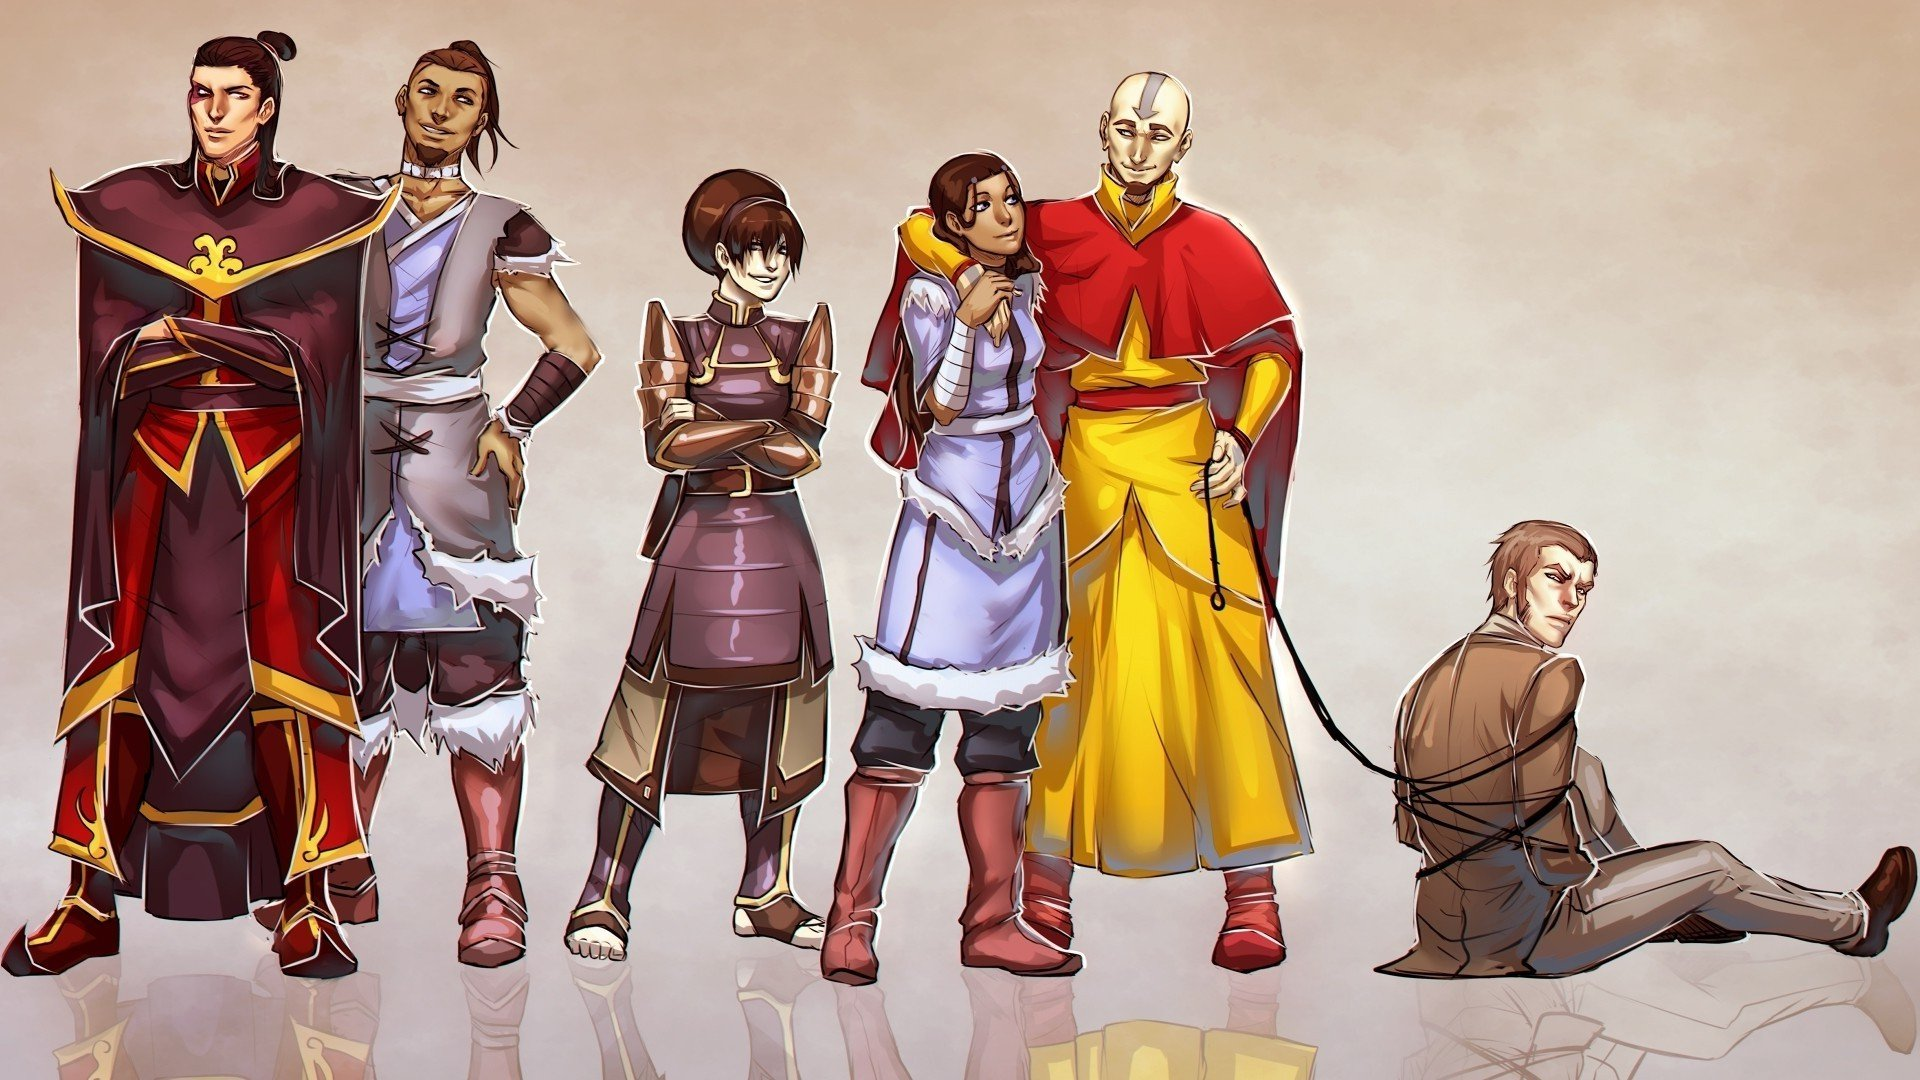 Avatar last airbender free download.